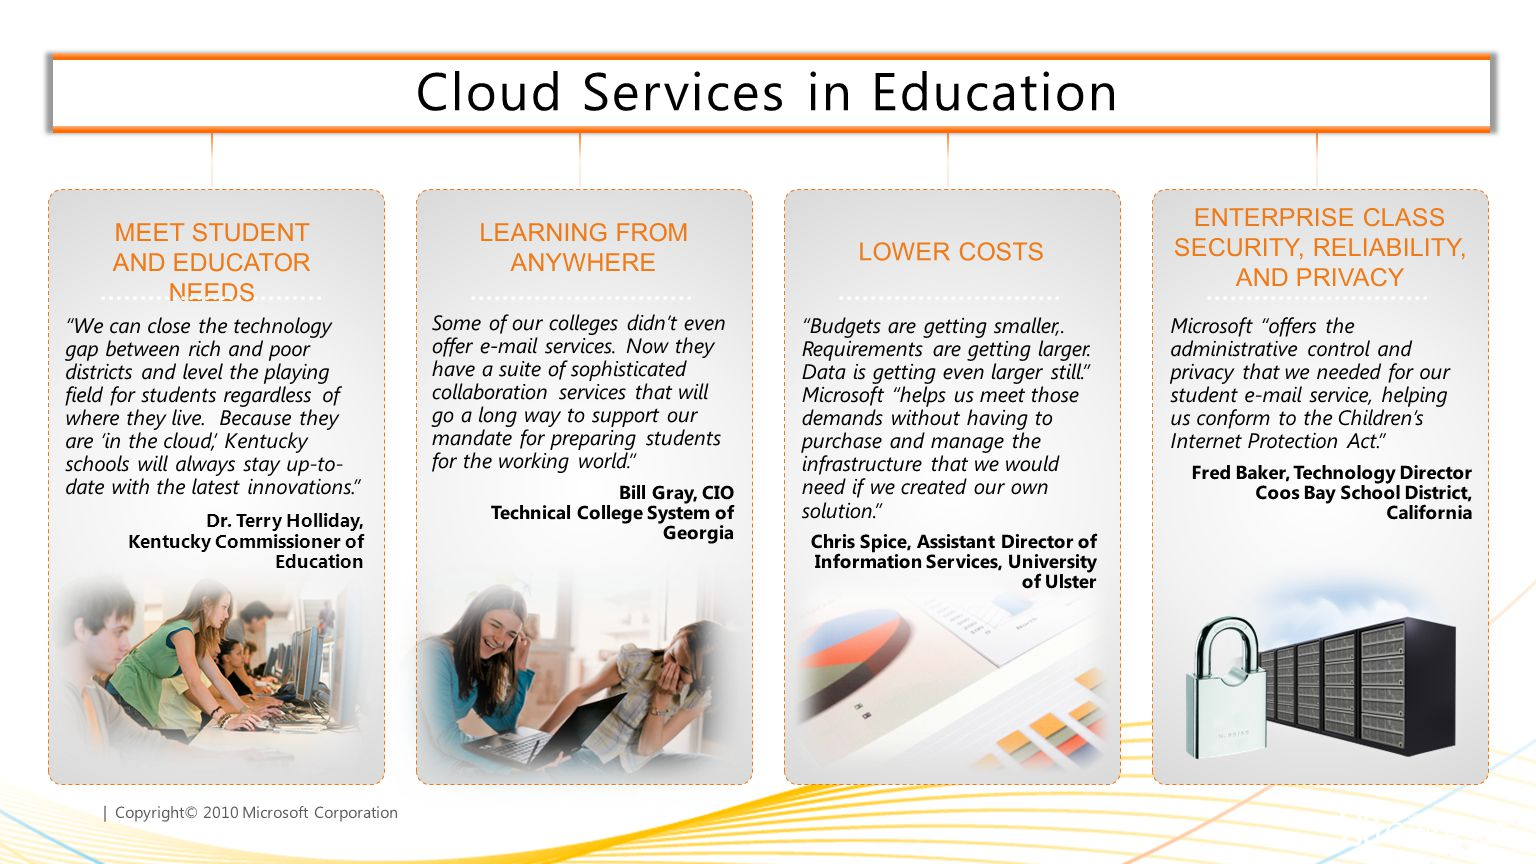 Cloud Services in Education